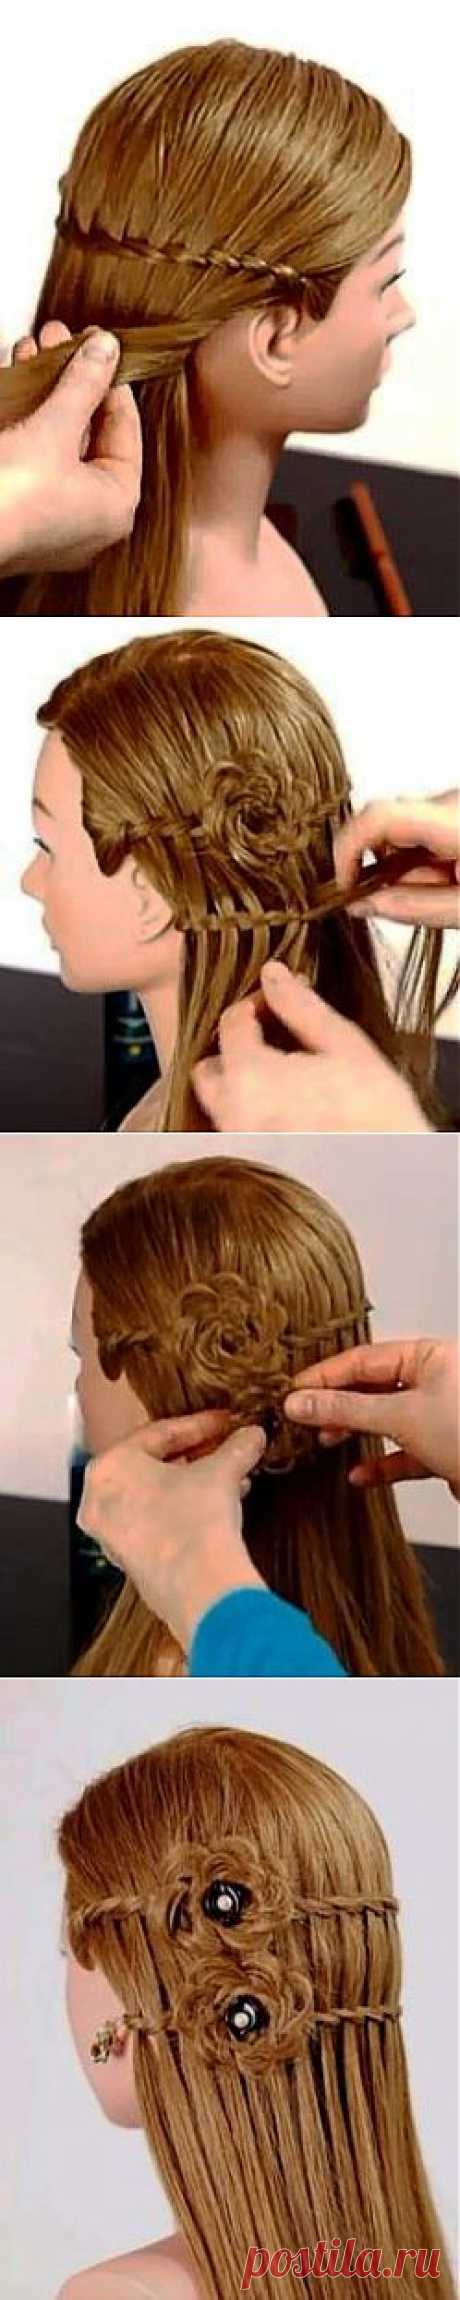 Lovely and gentle hairdress